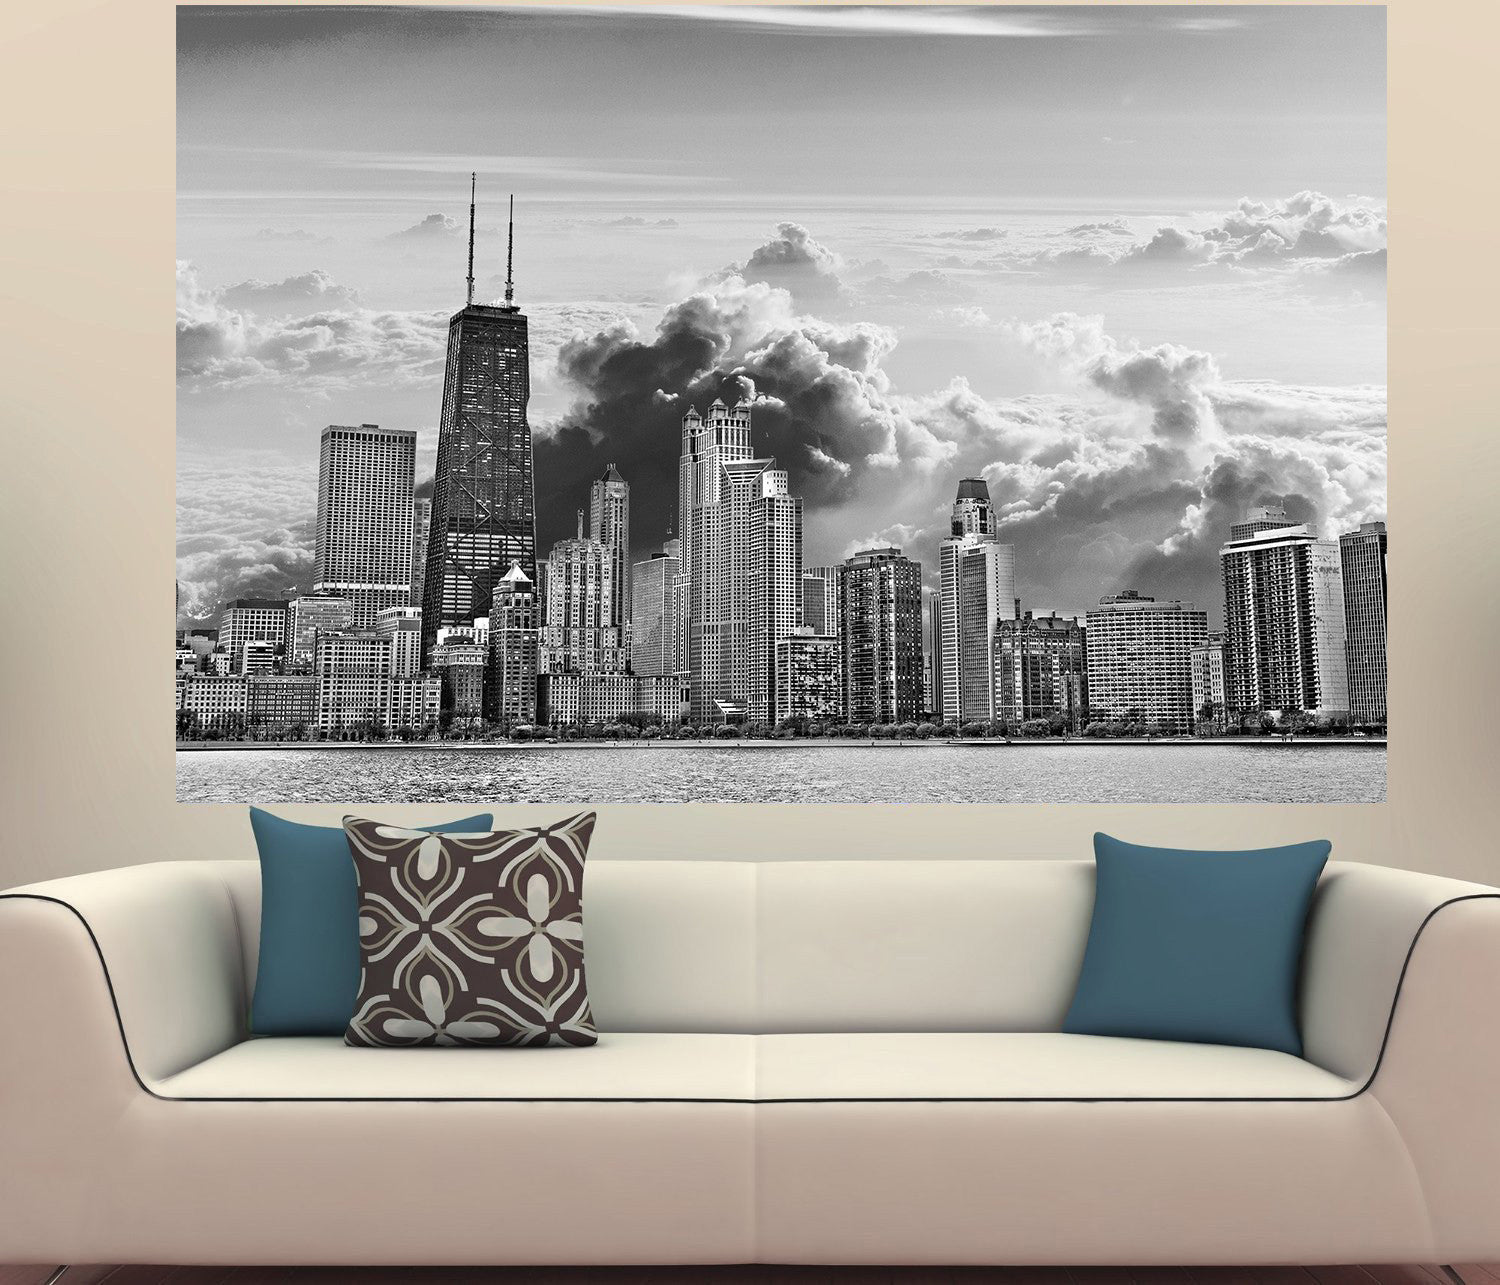 Zapwalls Decals Chicago Clouds Black U0026 White Skyline Wall Graphic